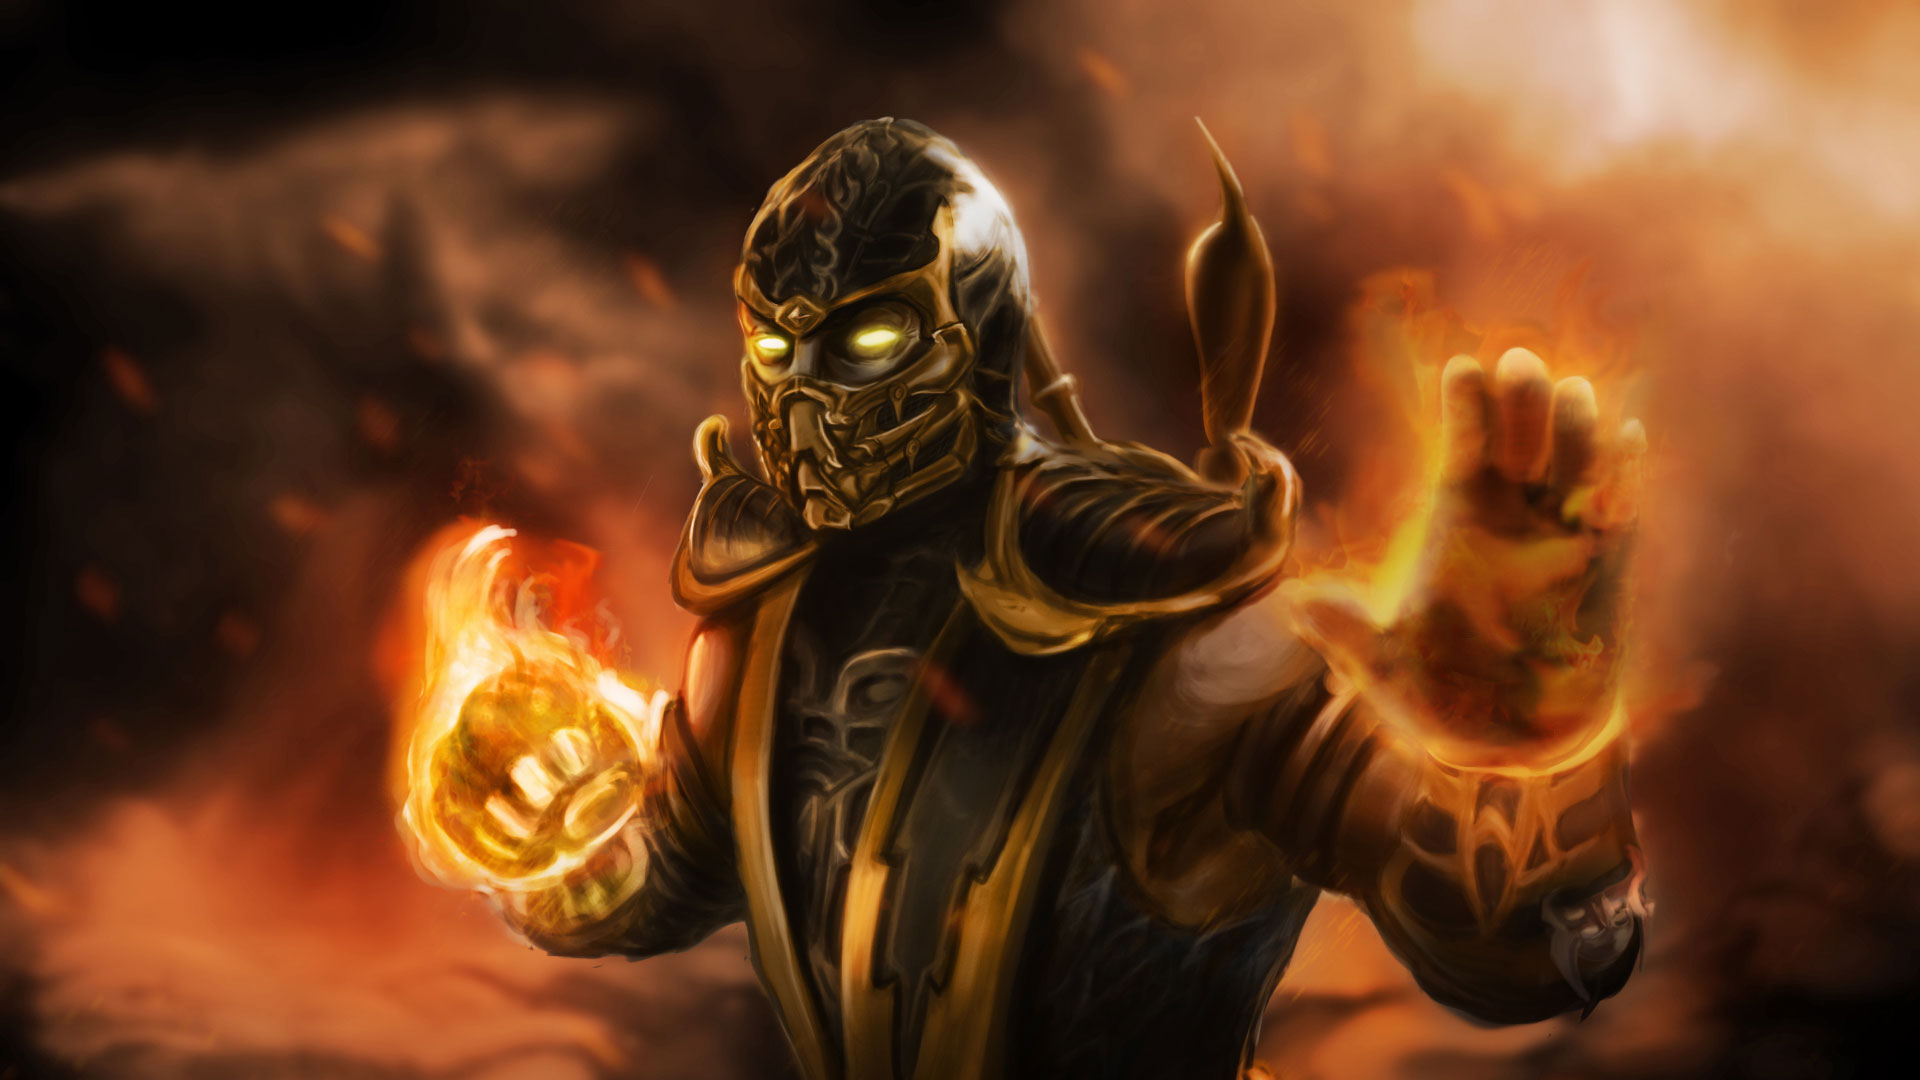 cool mortal kombat wallpaper 24108